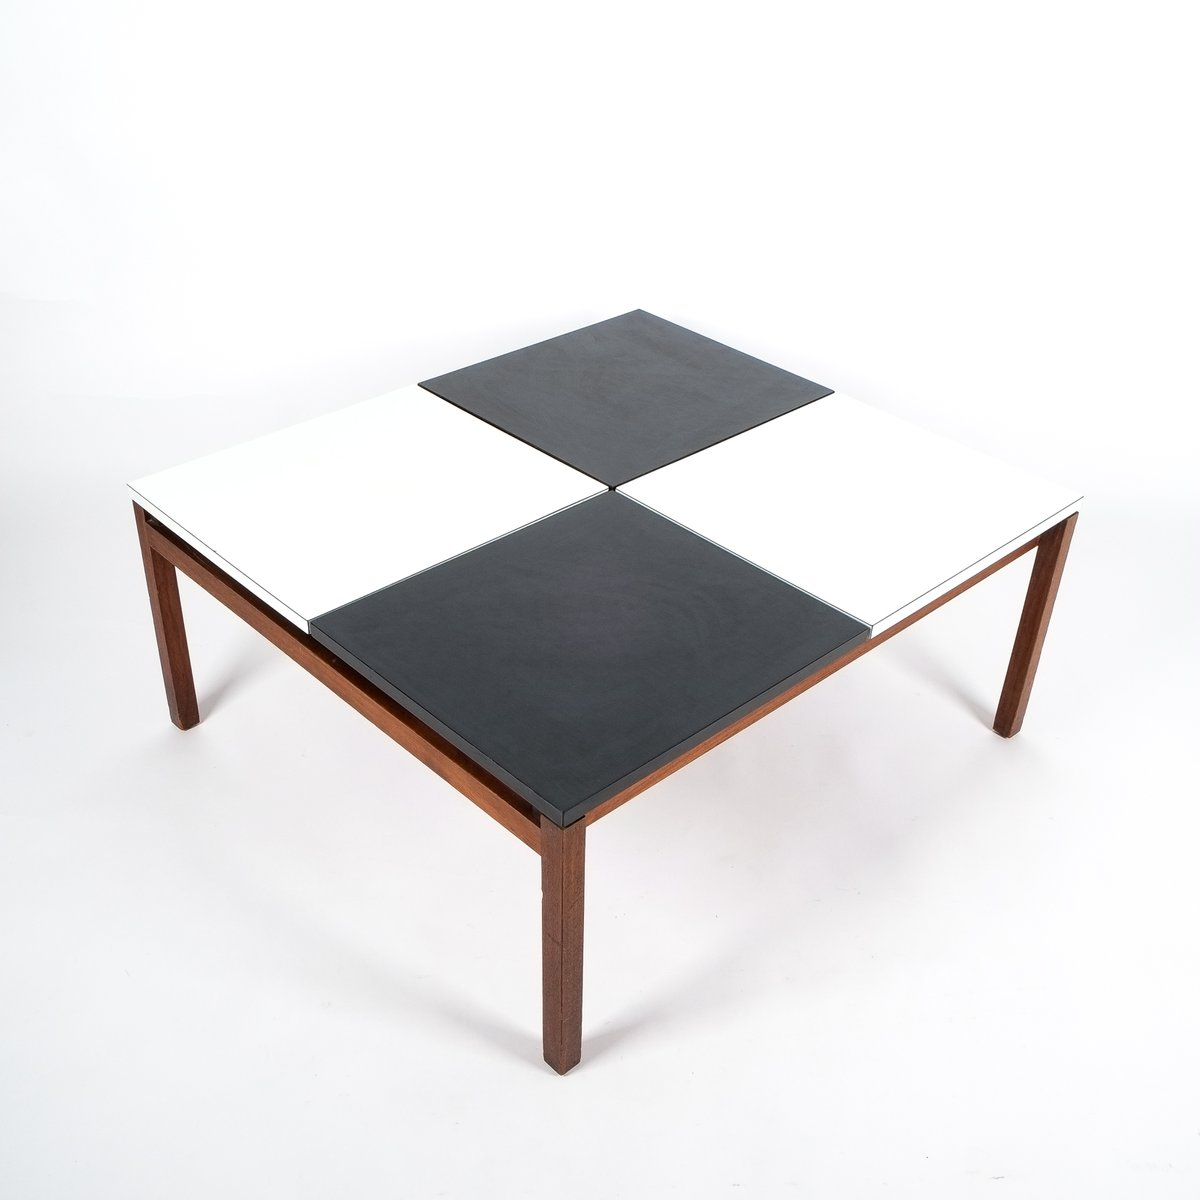 Black white coffee table by lewis butler for knoll 1960s for sale at pamono Black and white coffee table